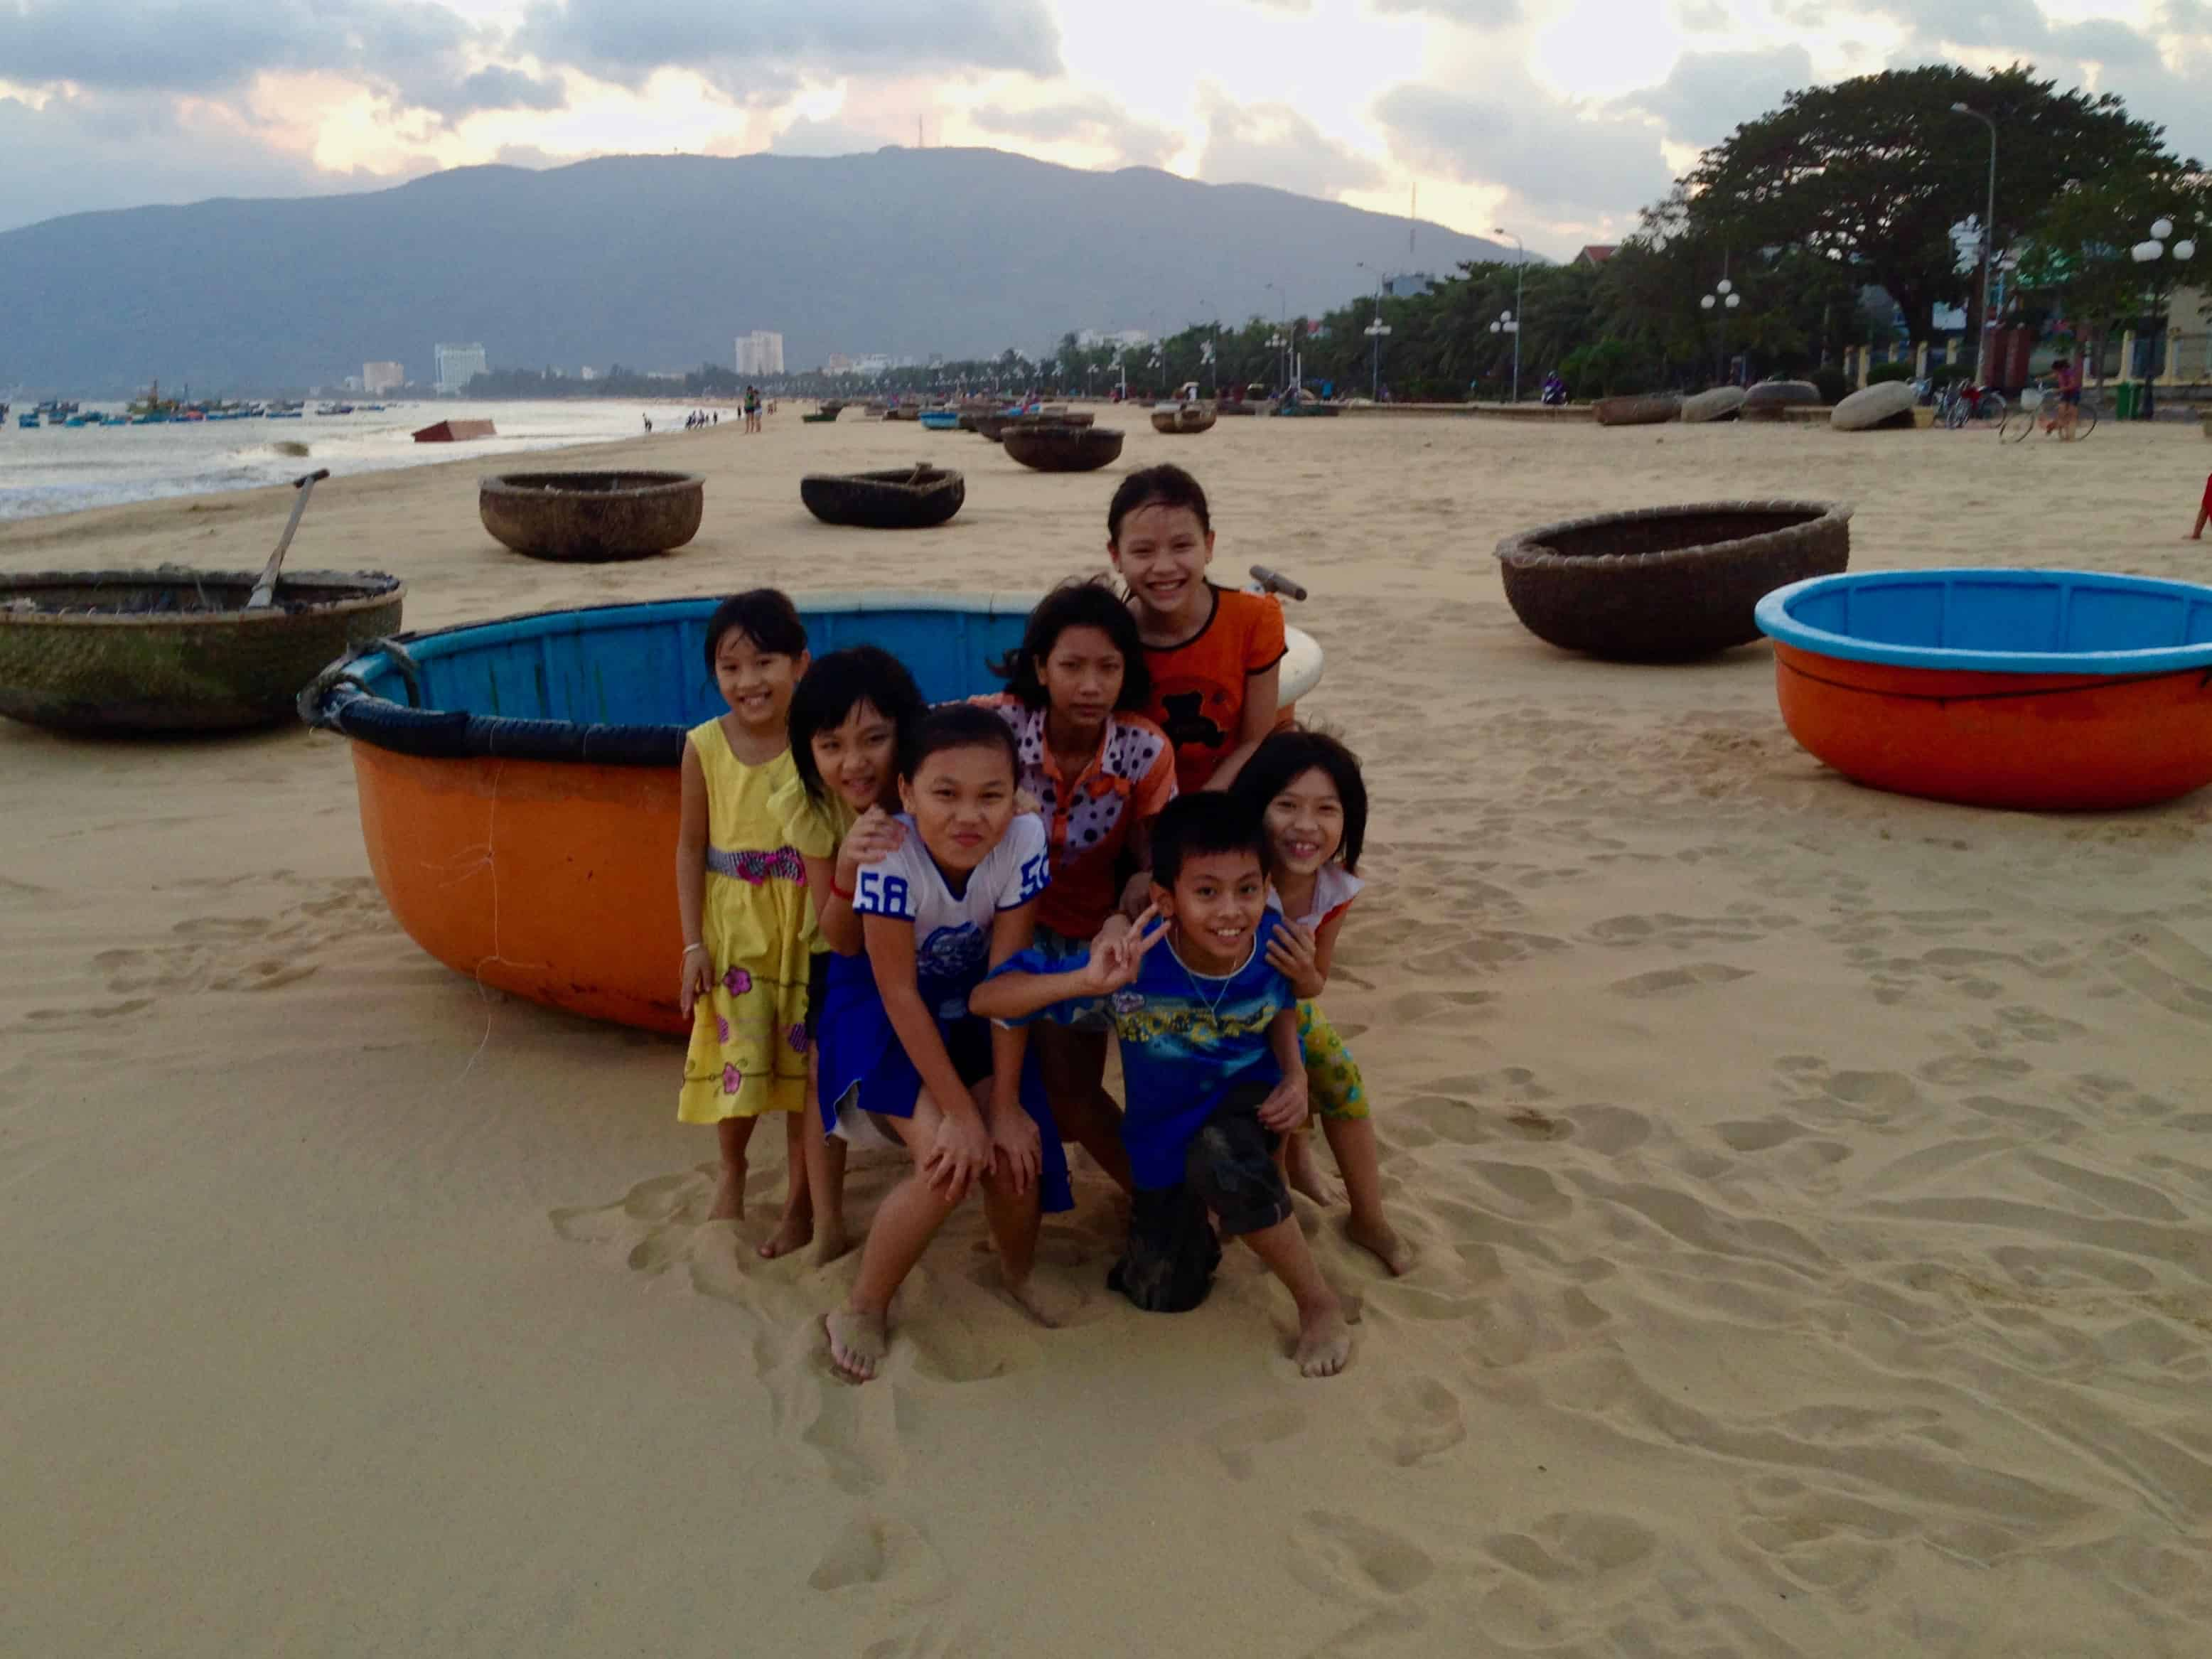 Basket Boats and Children on the Beach in Quy Nhon